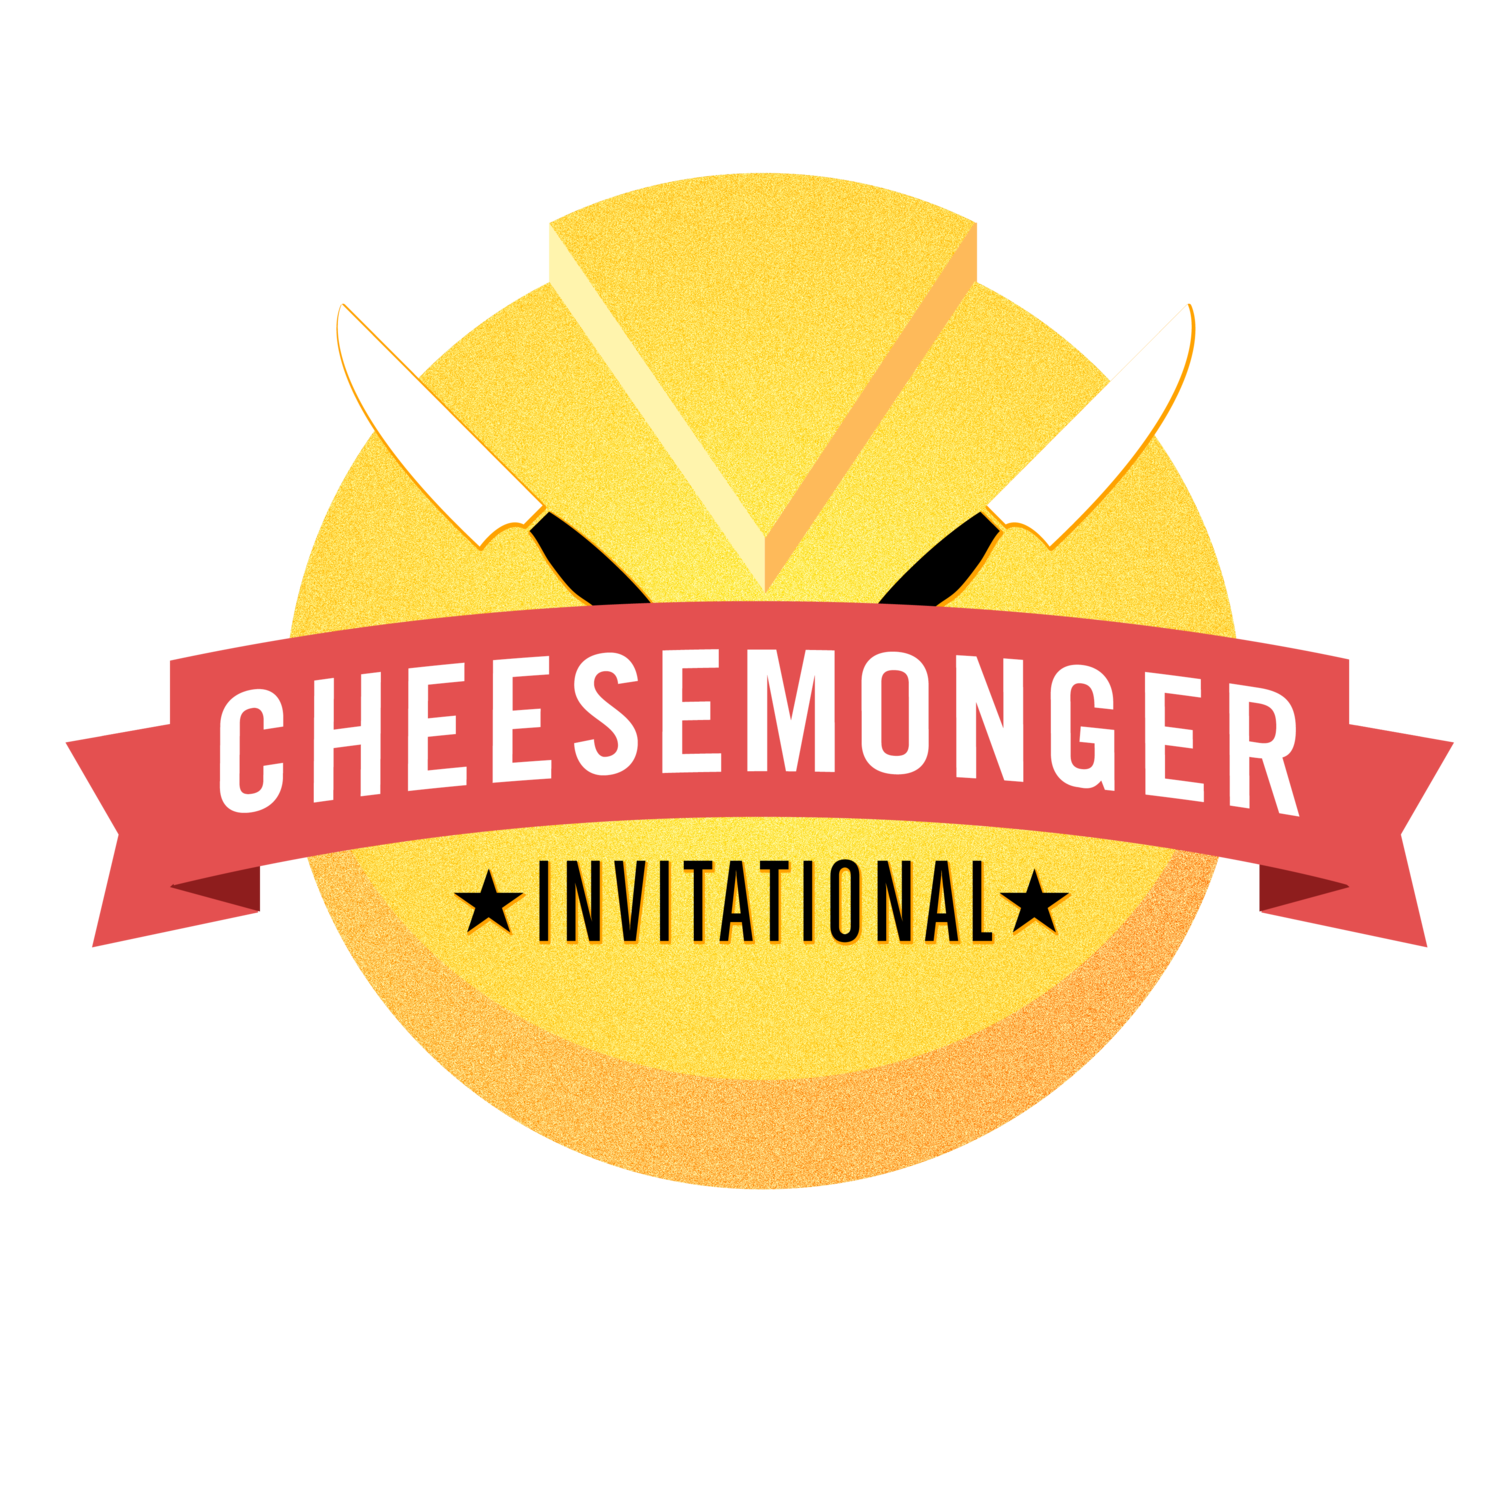 The Cheesemonger Invitational